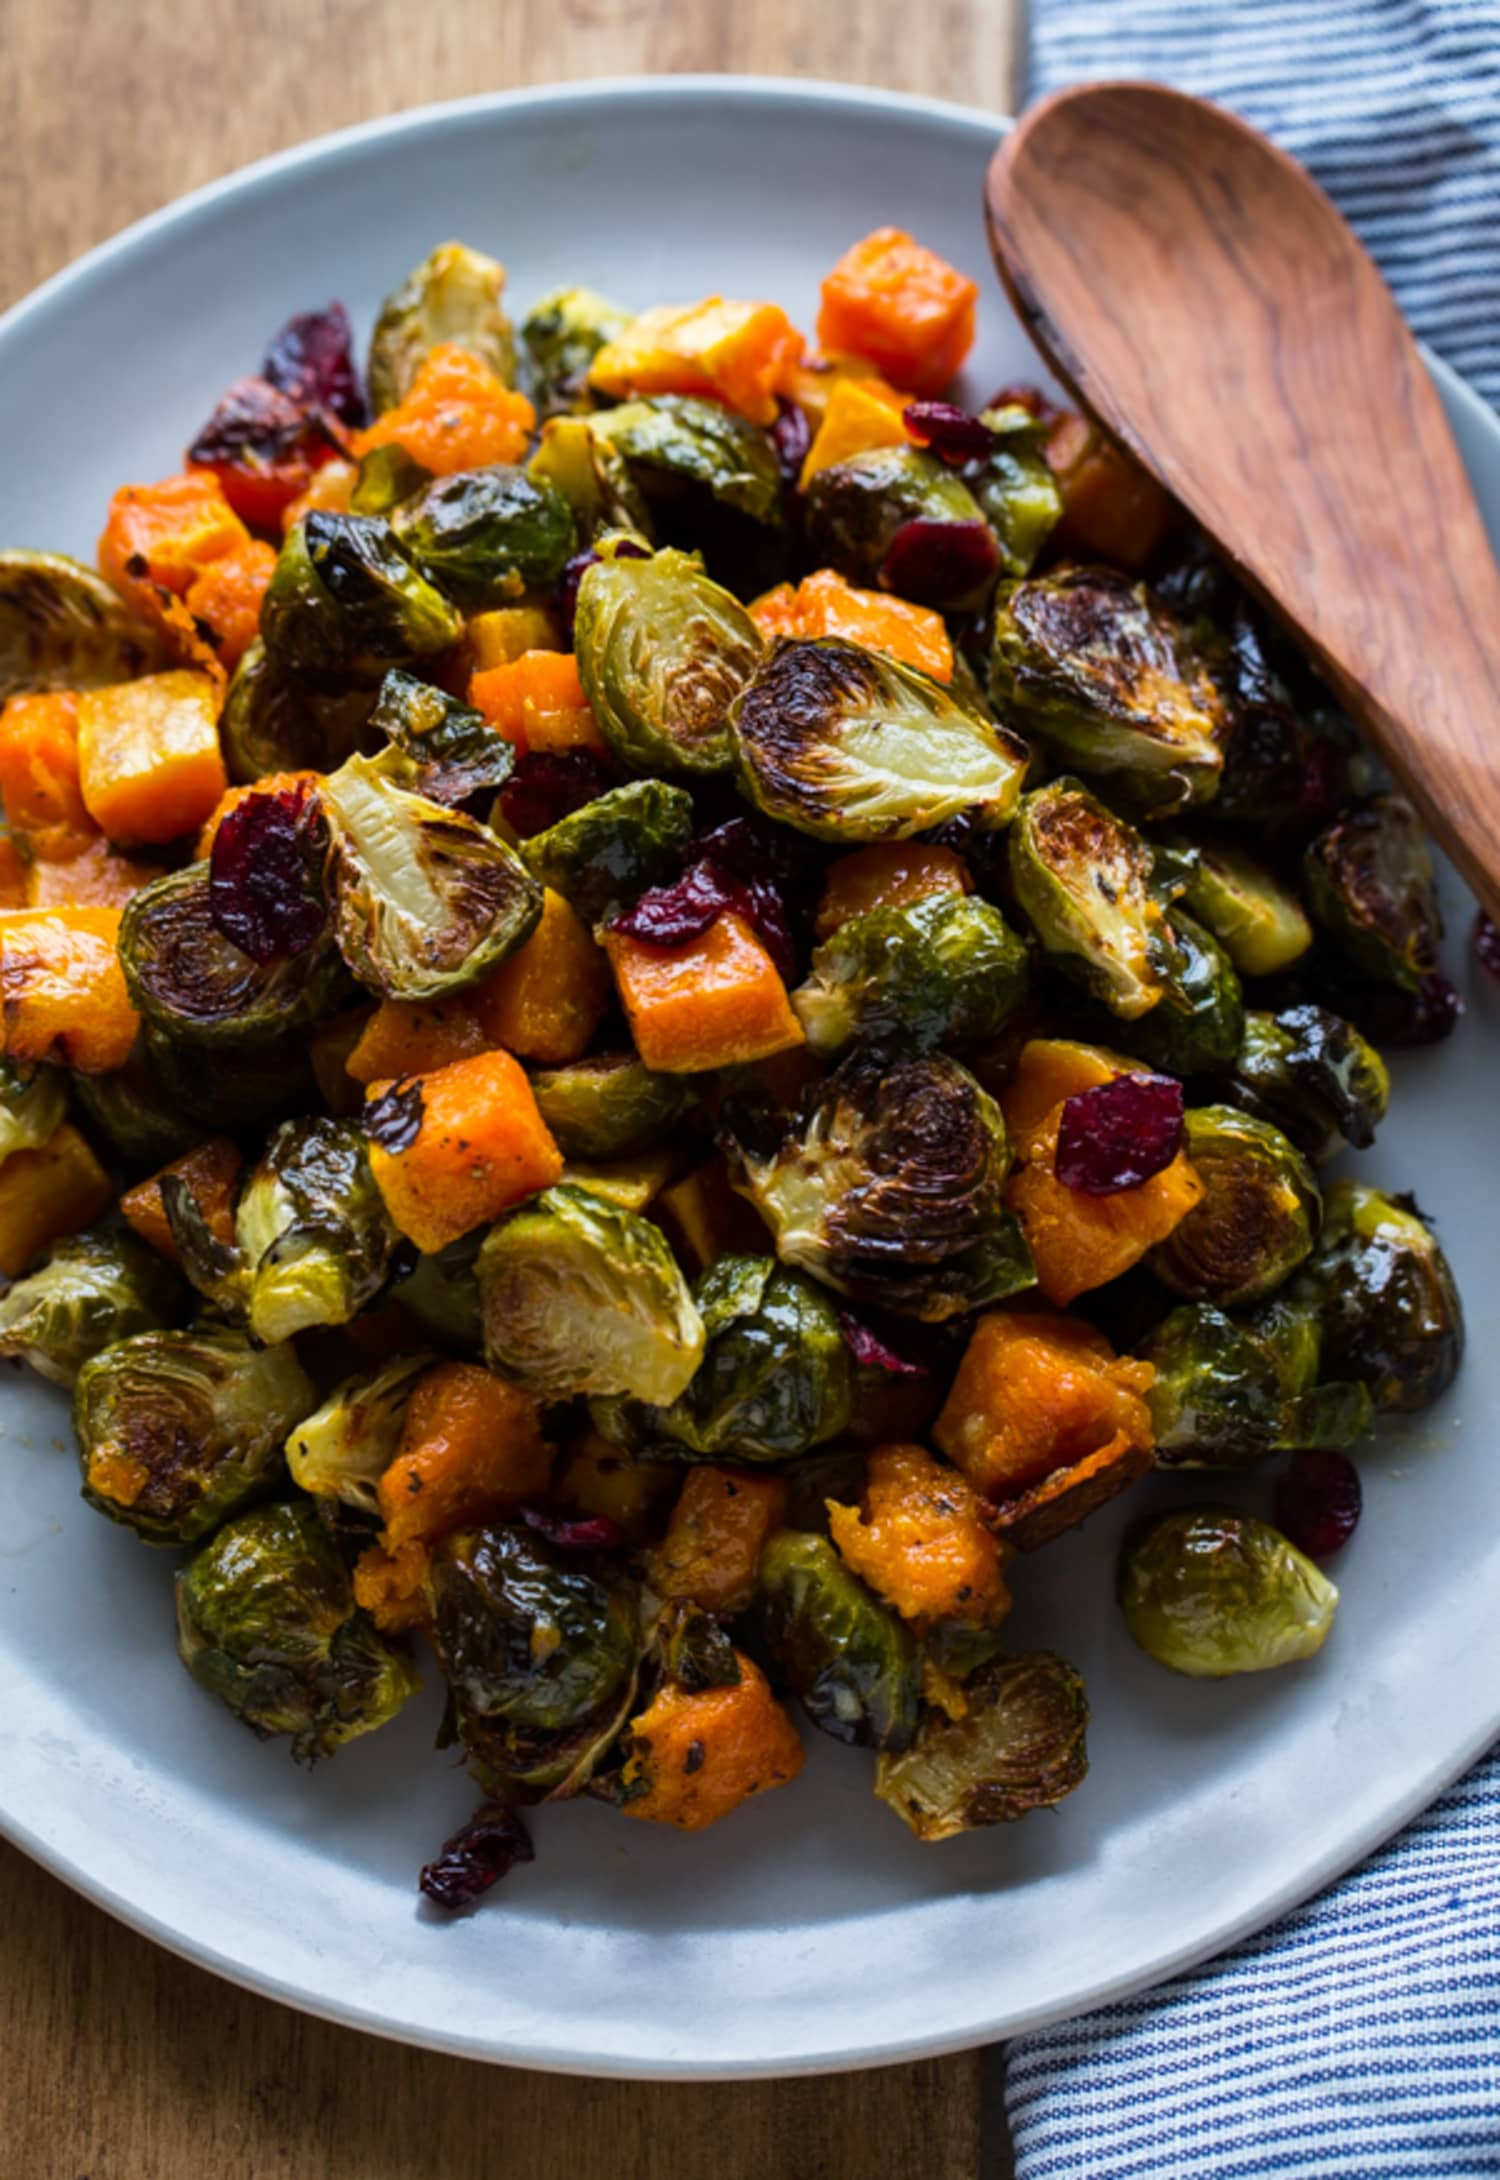 Here's the Most Popular Brussels Sprouts Recipe on Pinterest